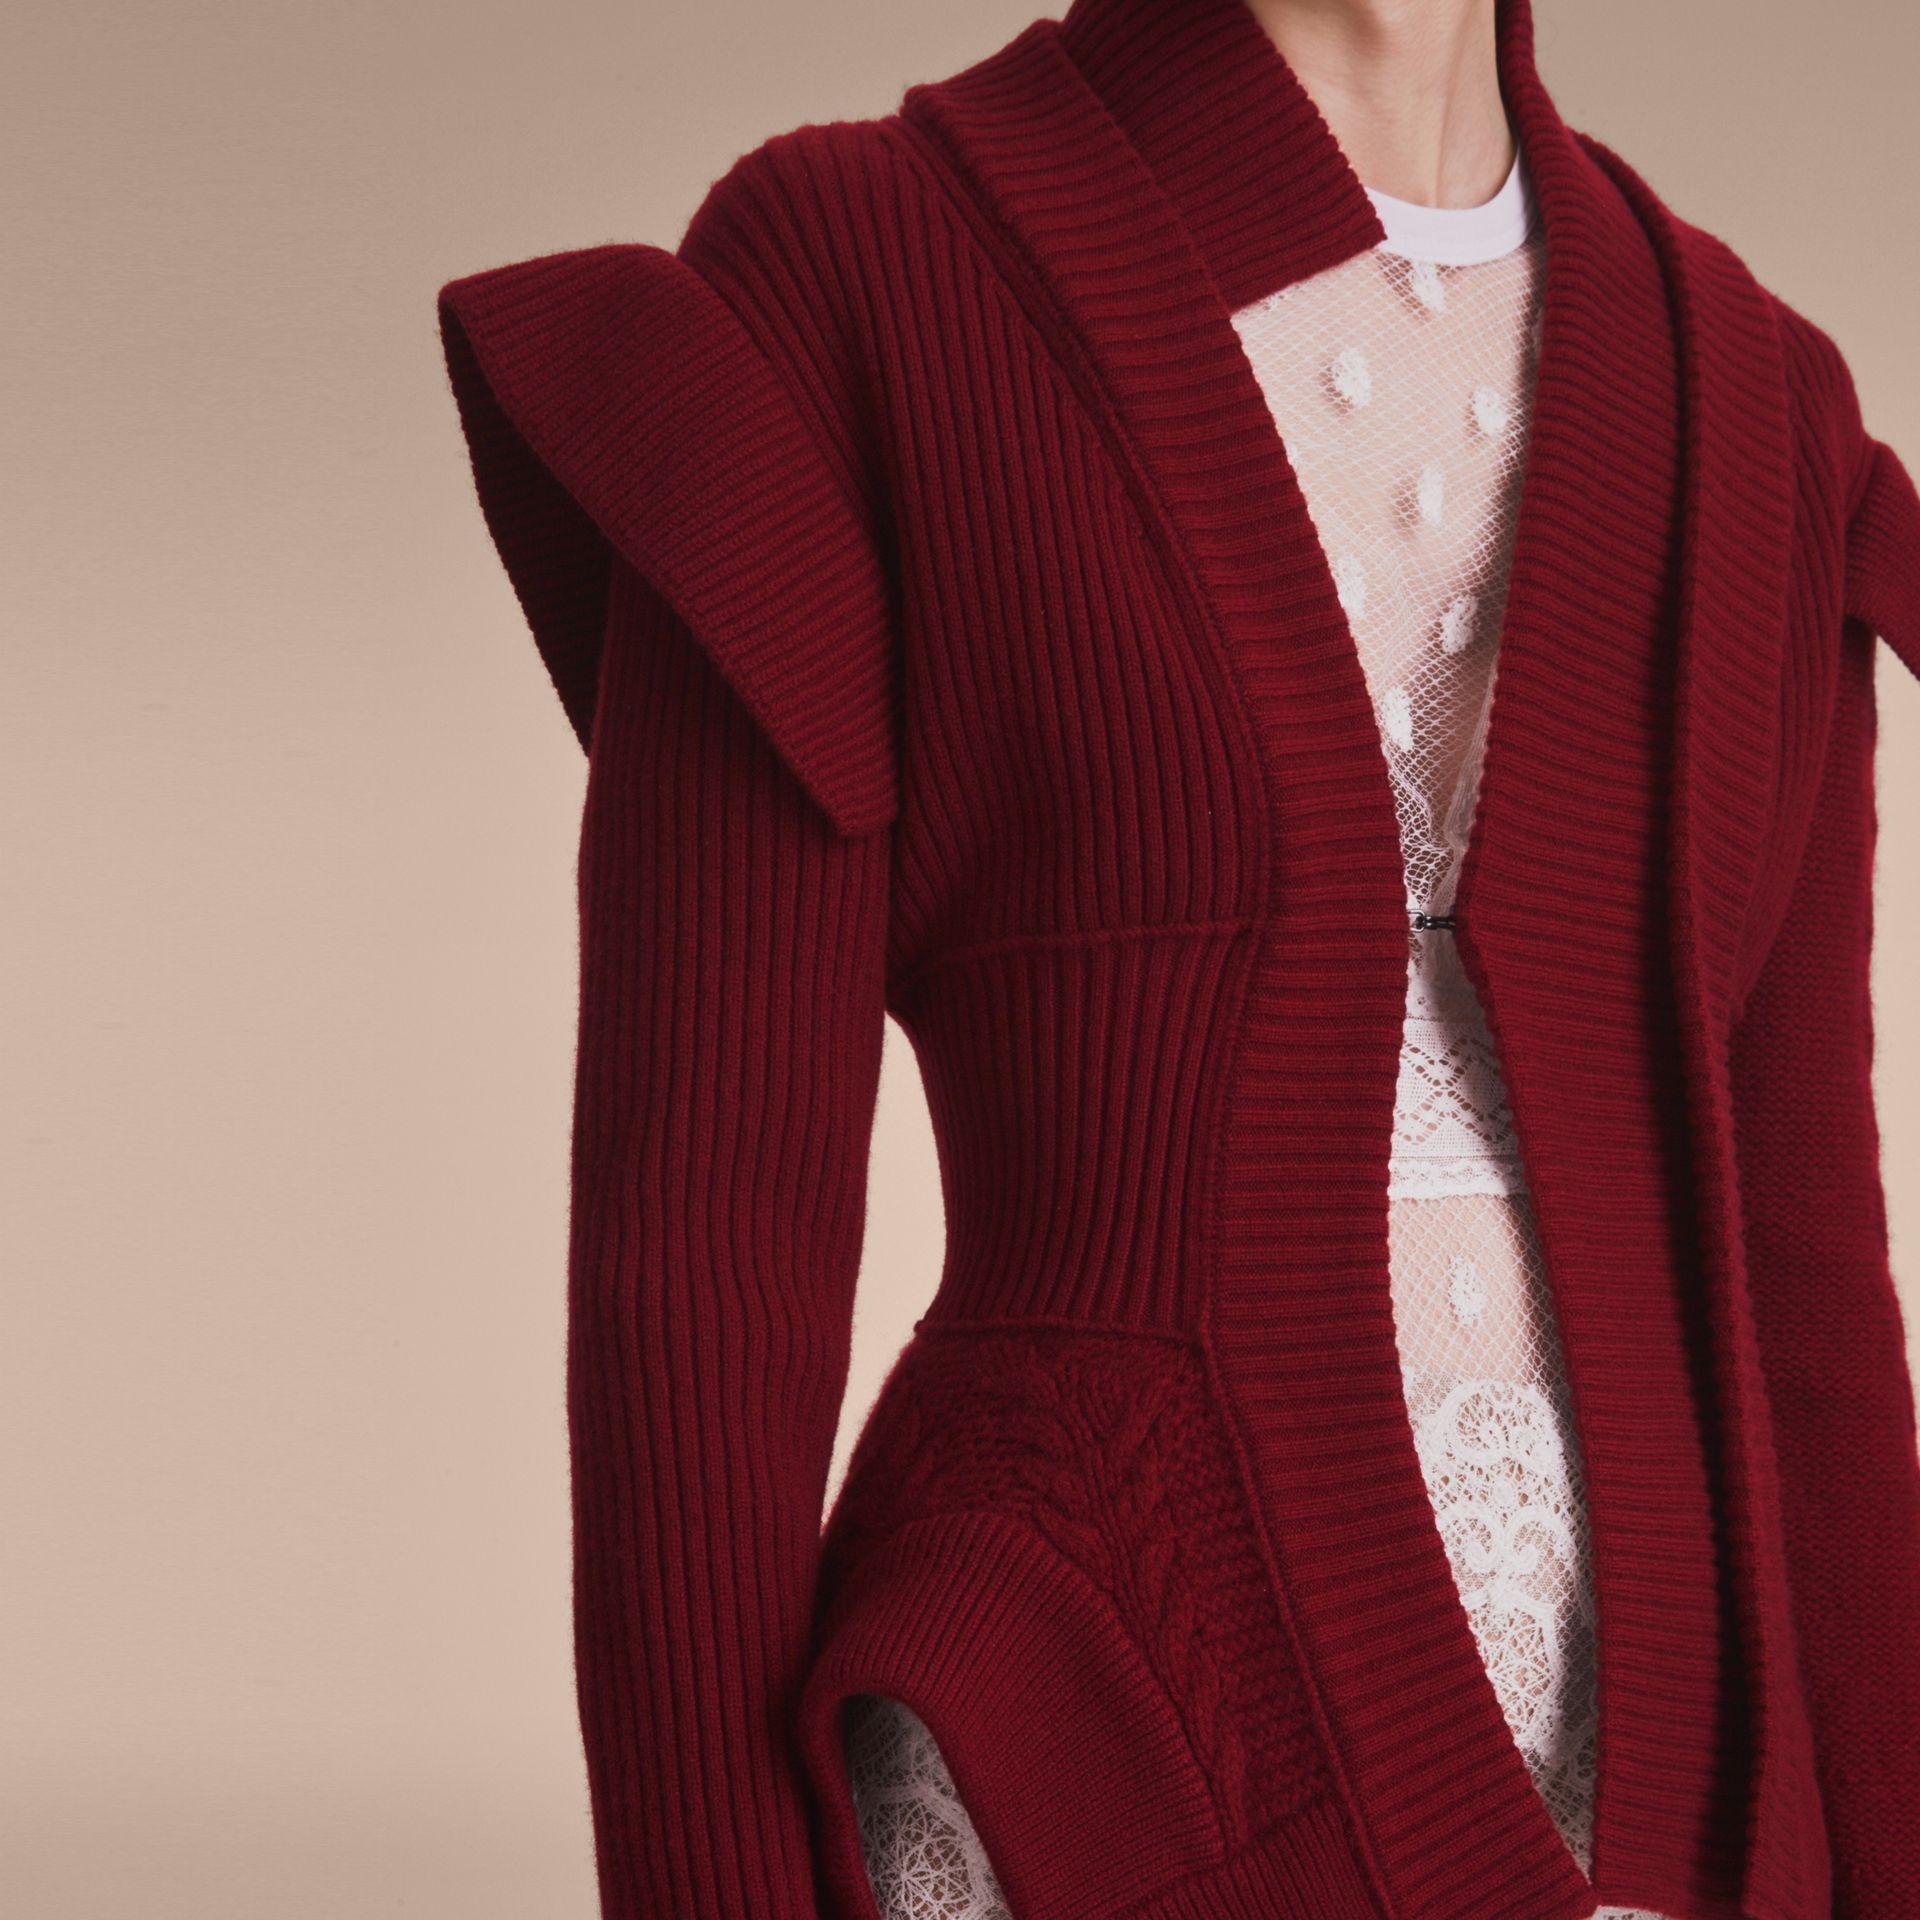 Knitted Wool Cashmere Military-inspired Jacket in Bordeaux - Women | Burberry Singapore - gallery image 5